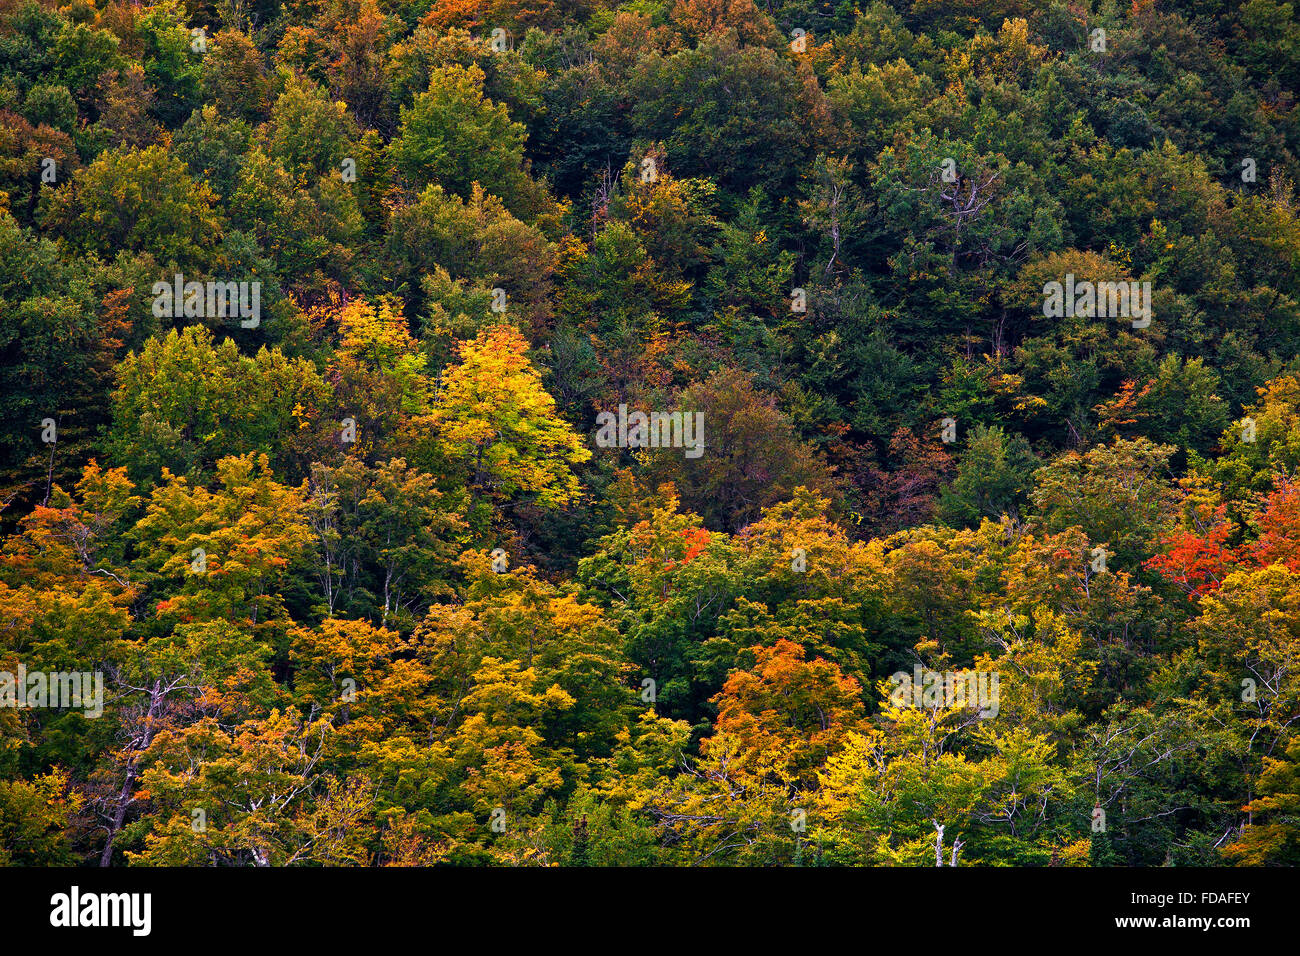 Early autumn colors, Eastern Townships, West Bolton, Quebec, Canada - Stock Image